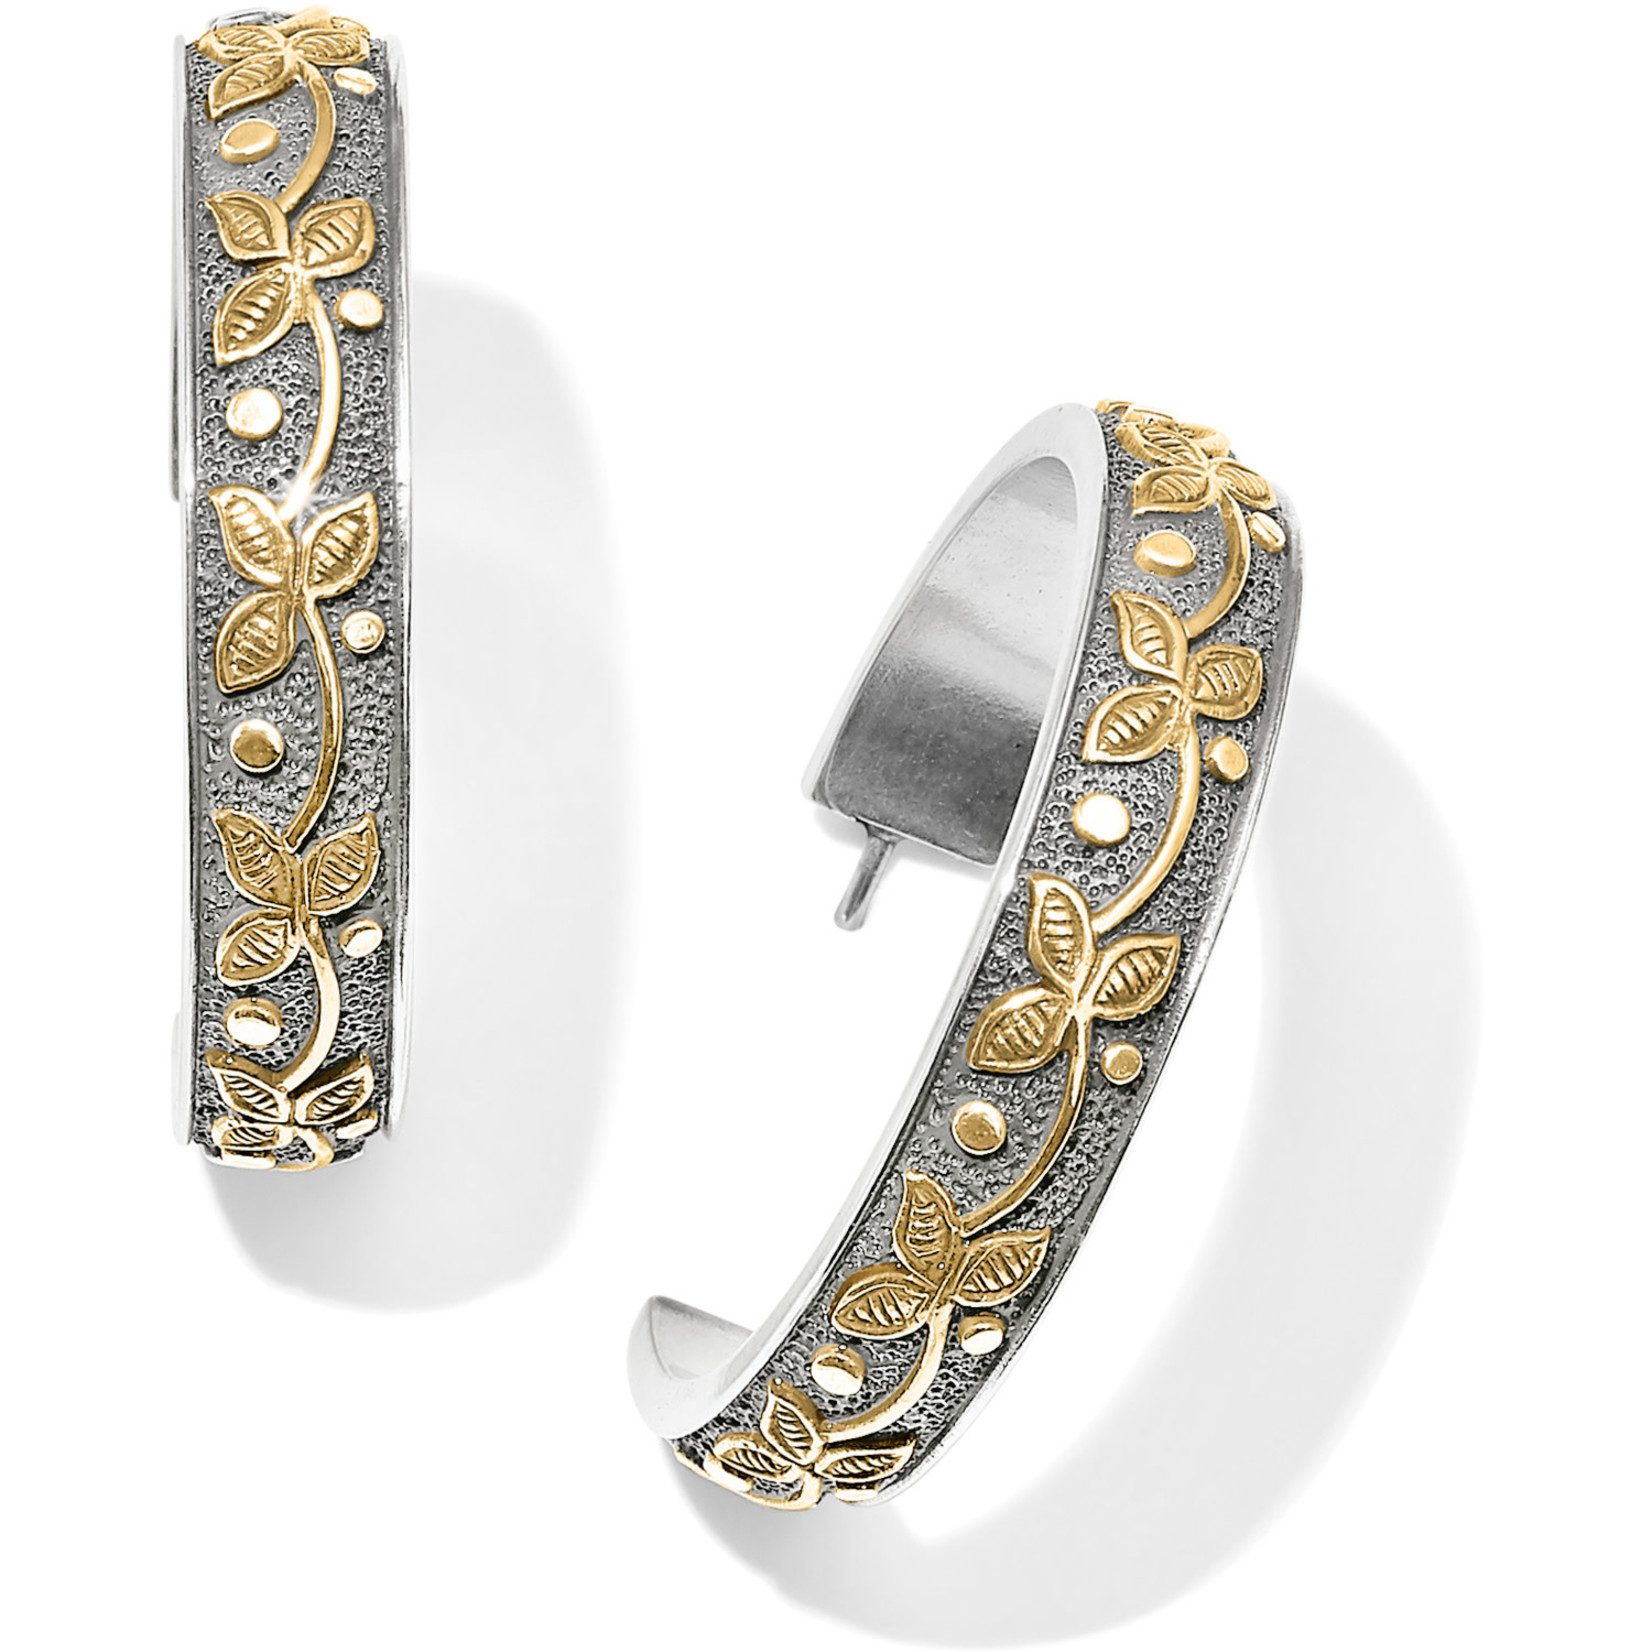 Brighton Udaipur Palace Hoop Earrings in Silver/Gold